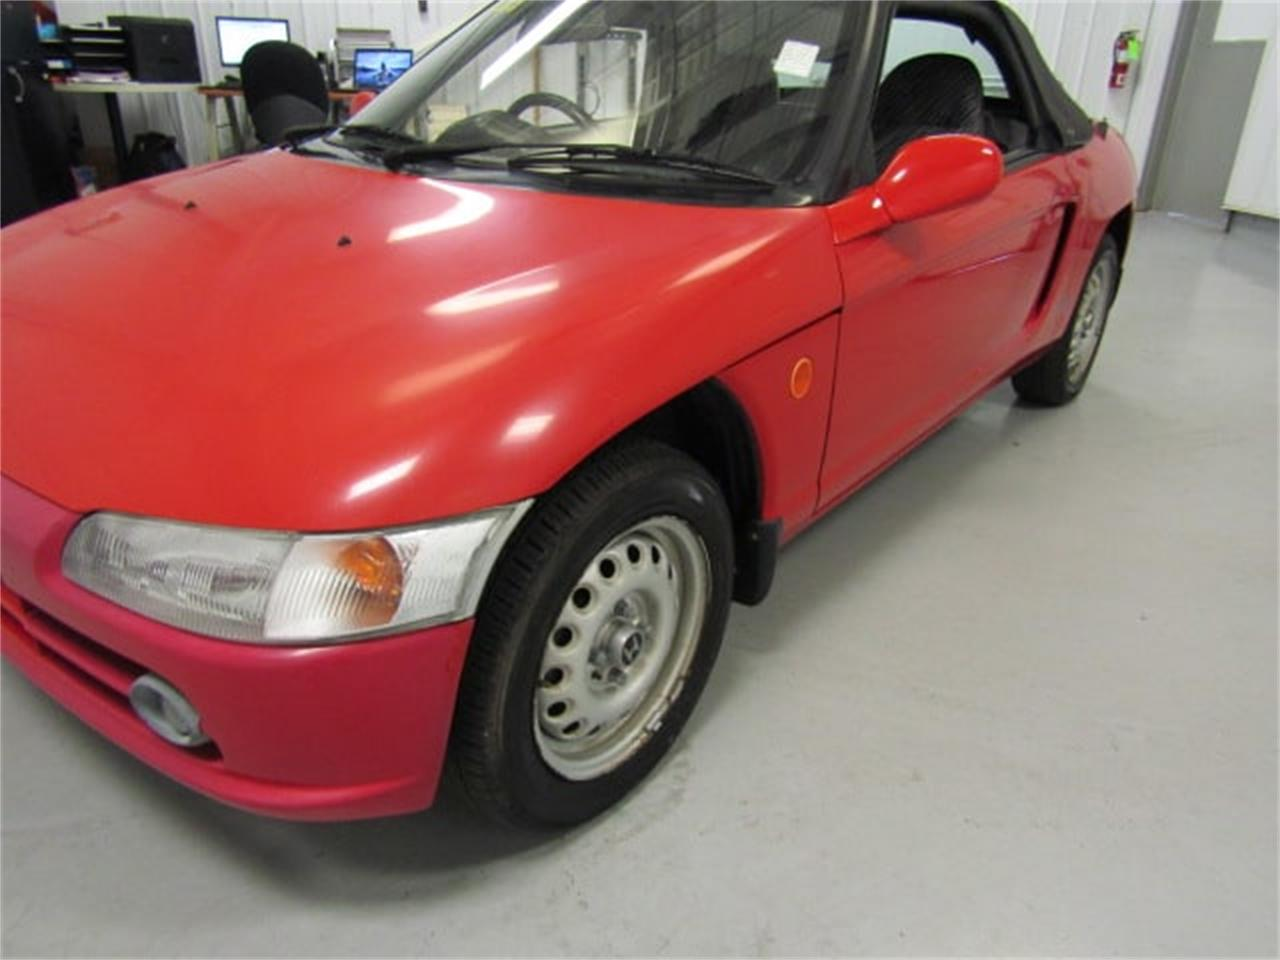 Large Picture of '91 Honda Beat - $5,990.00 Offered by Duncan Imports & Classic Cars - JL71